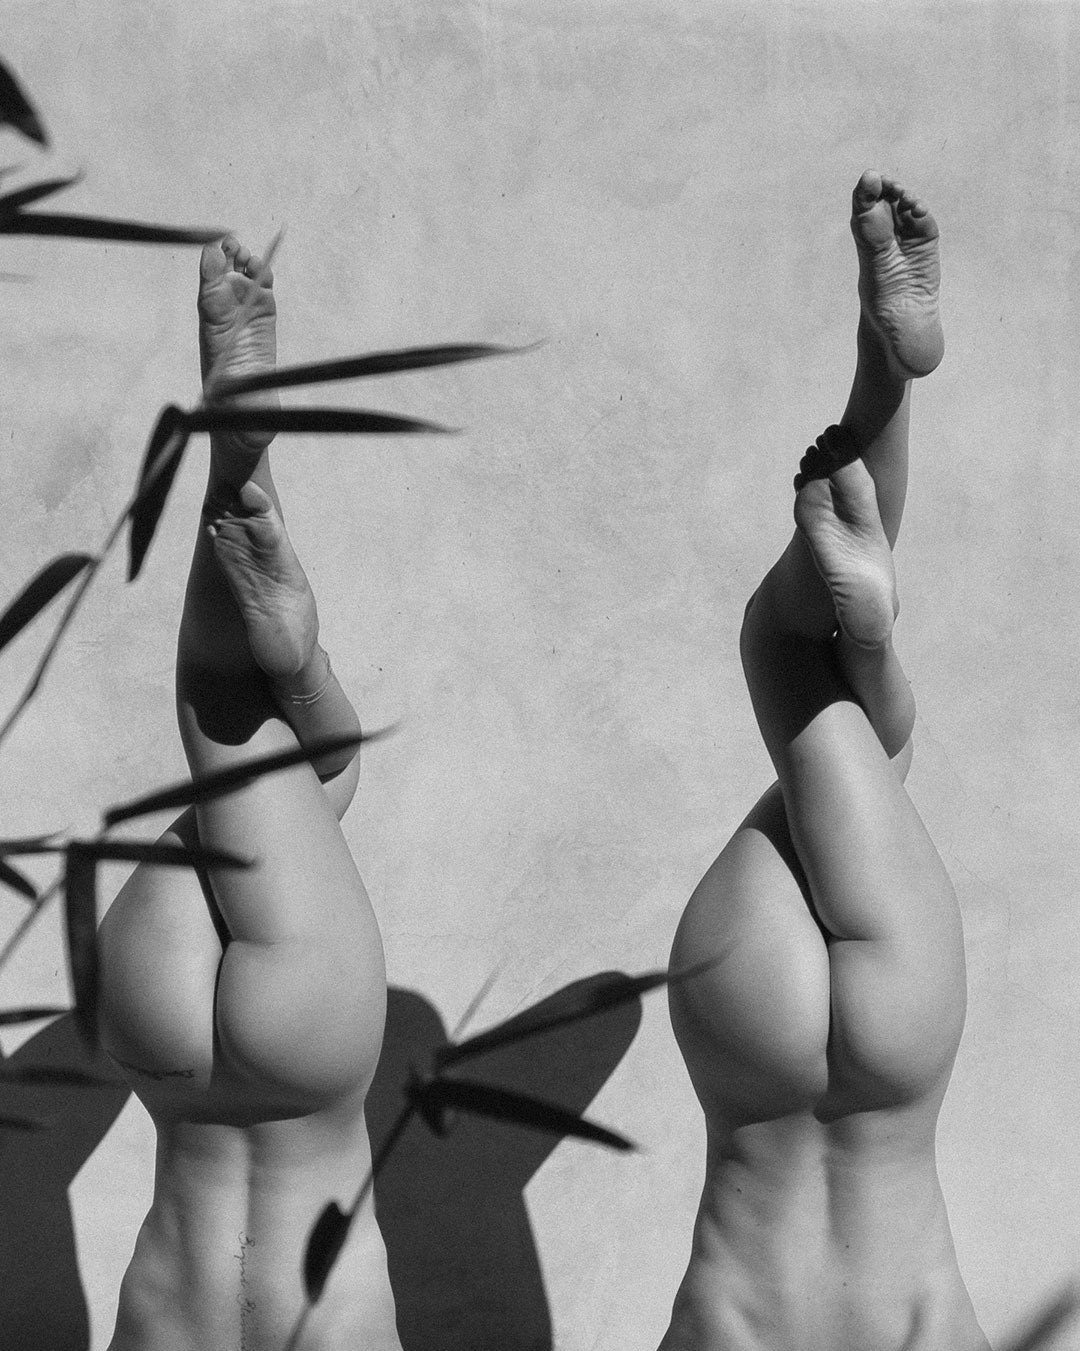 Two women performing a headstand eagle legs pose